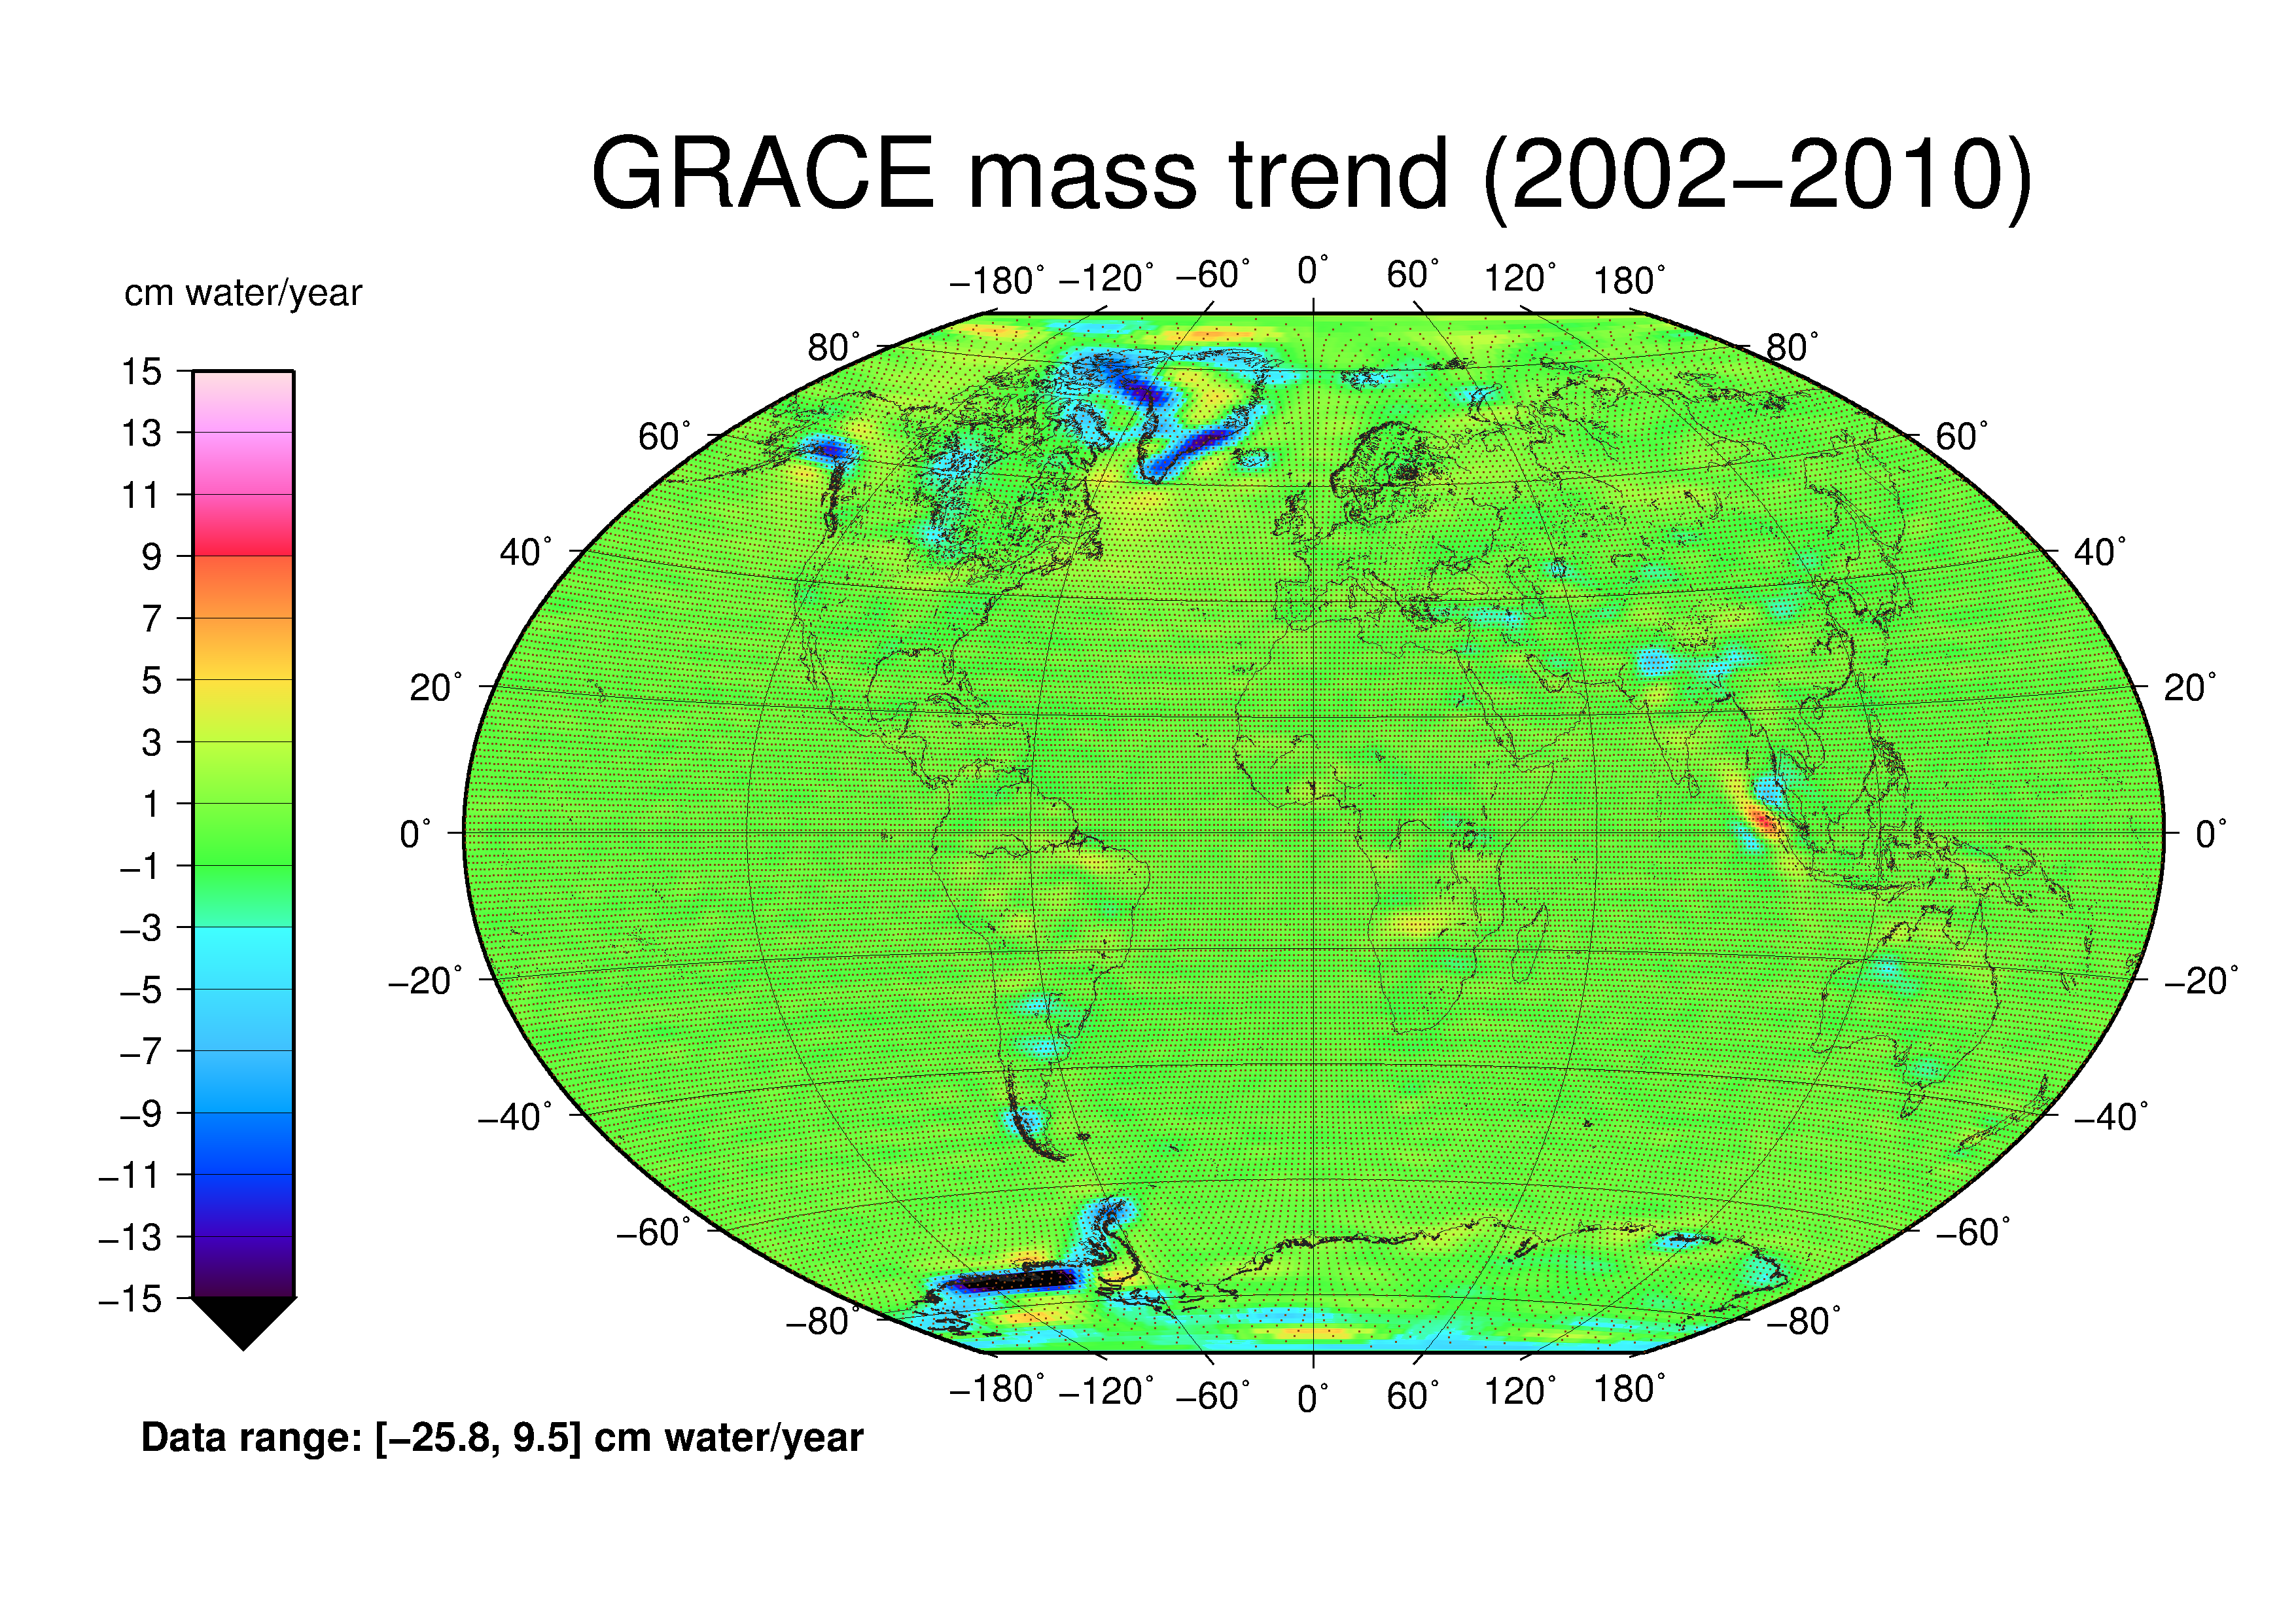 GRACE mass trend from 2002-2010.